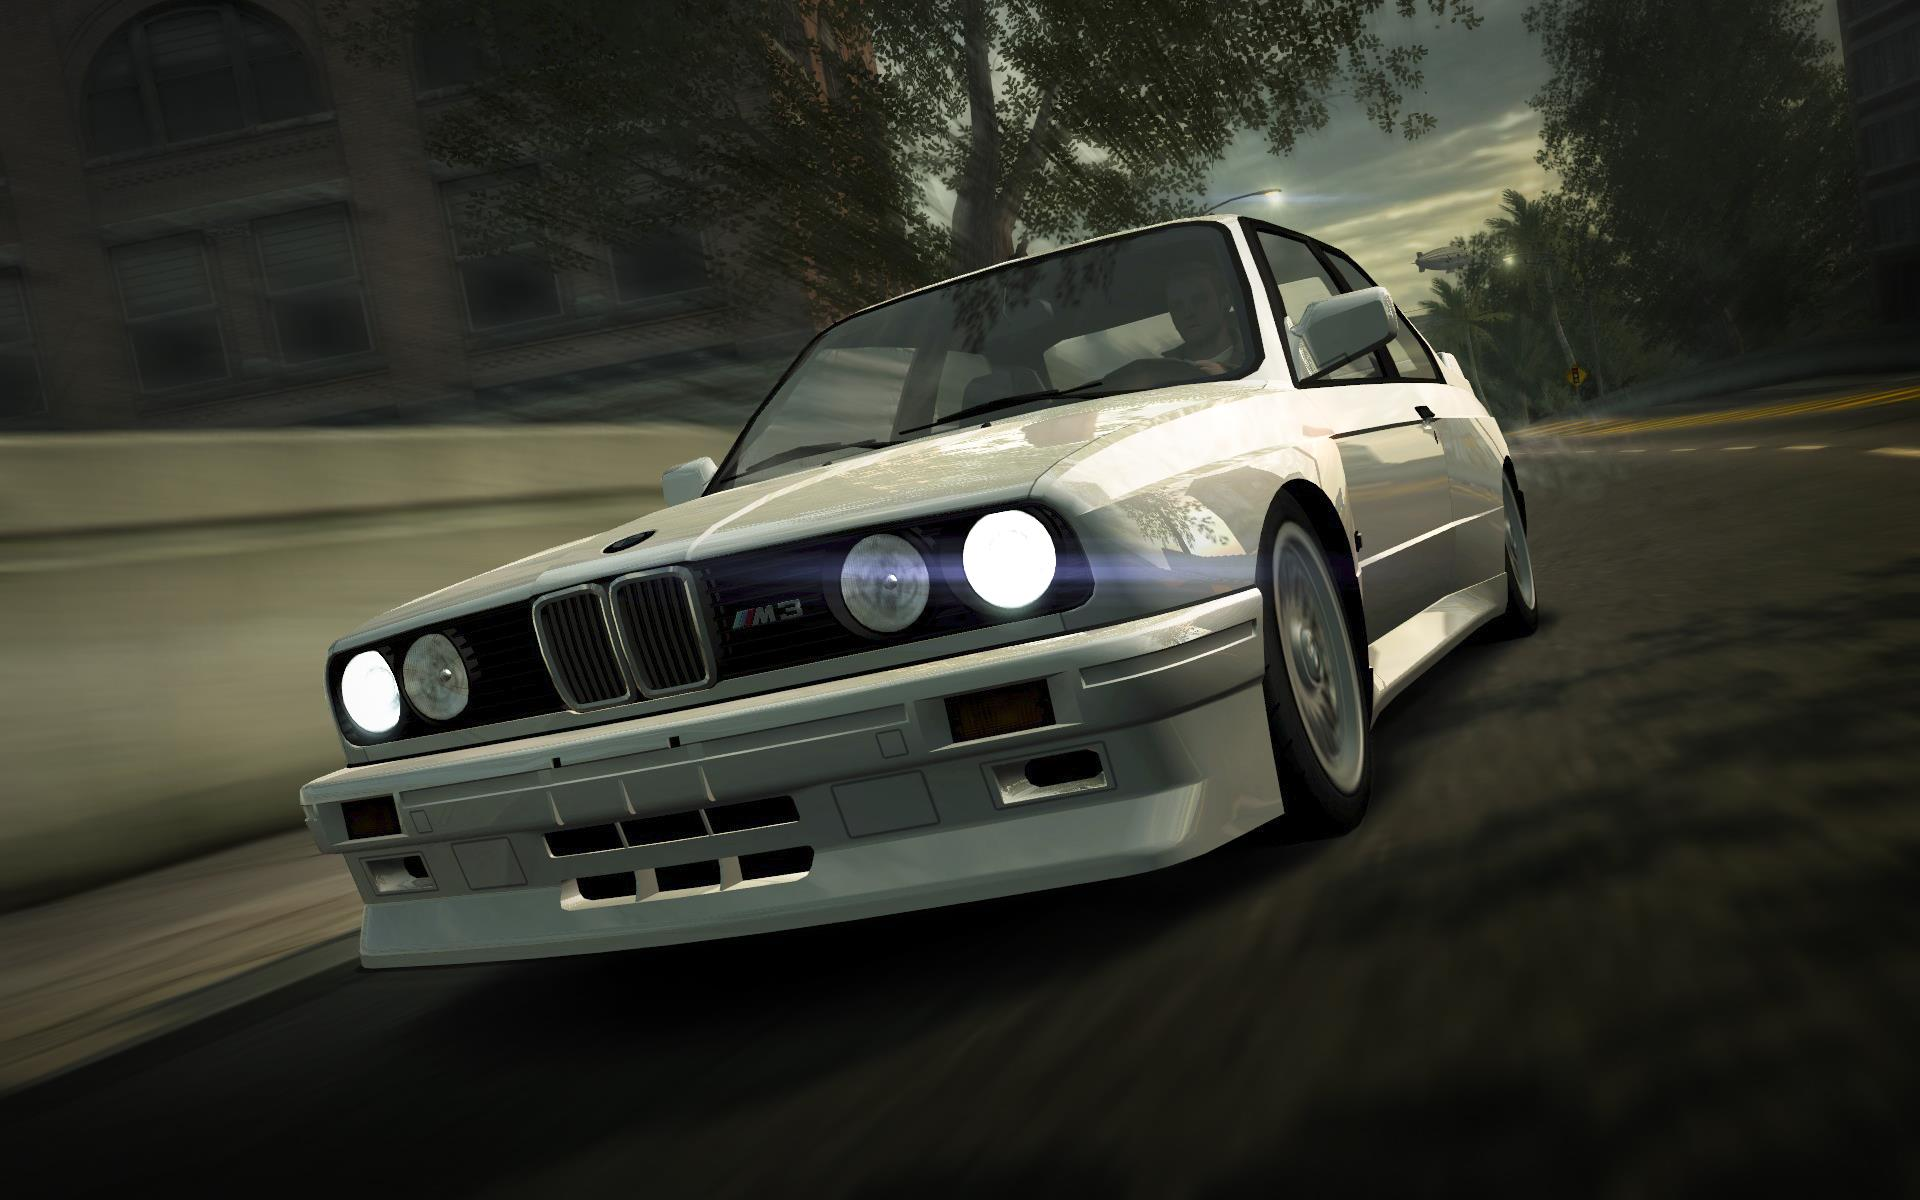 BMW M3 Sport Evolution  NFS World Wiki  FANDOM powered by Wikia